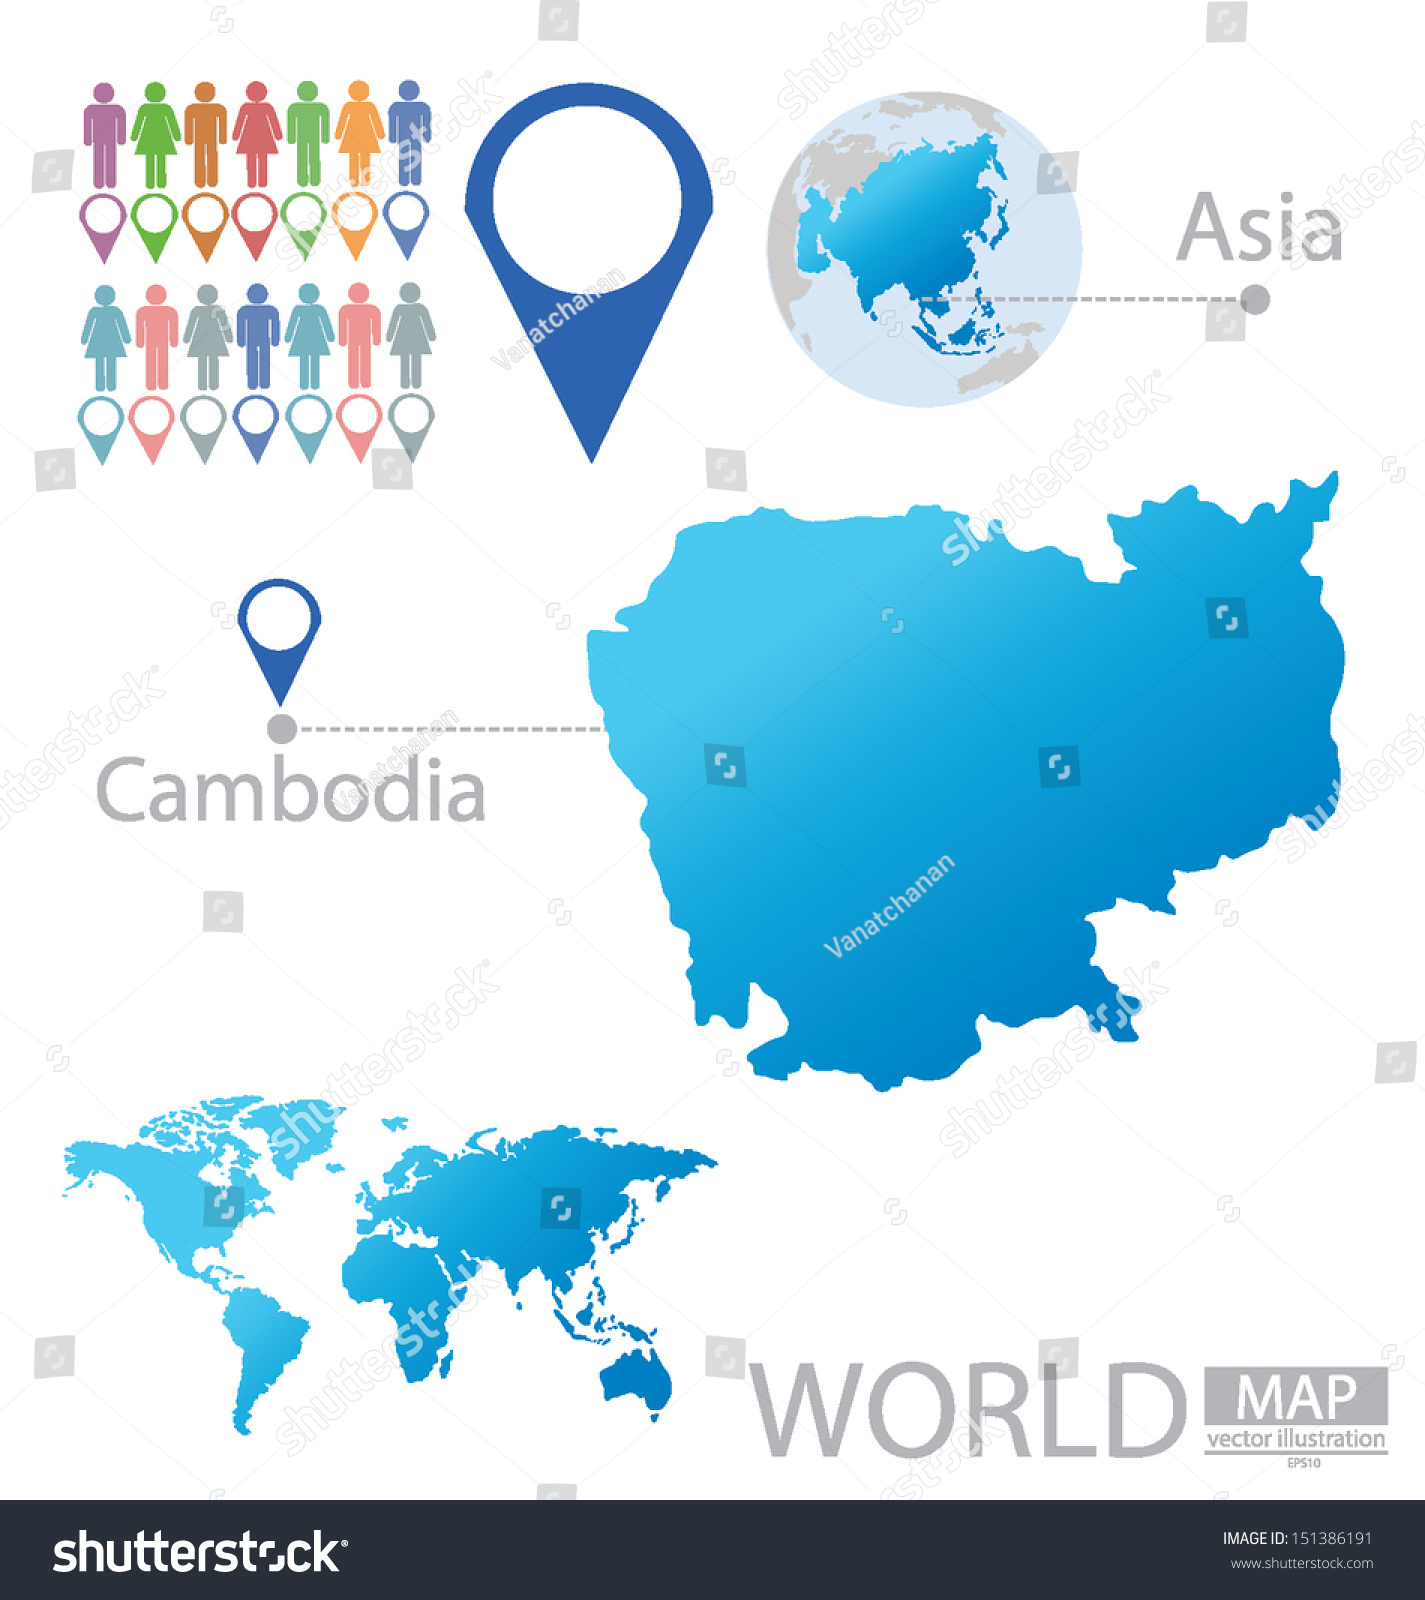 Cambodia Asia World Map Vector Illustration Stock Vector (Royalty ...